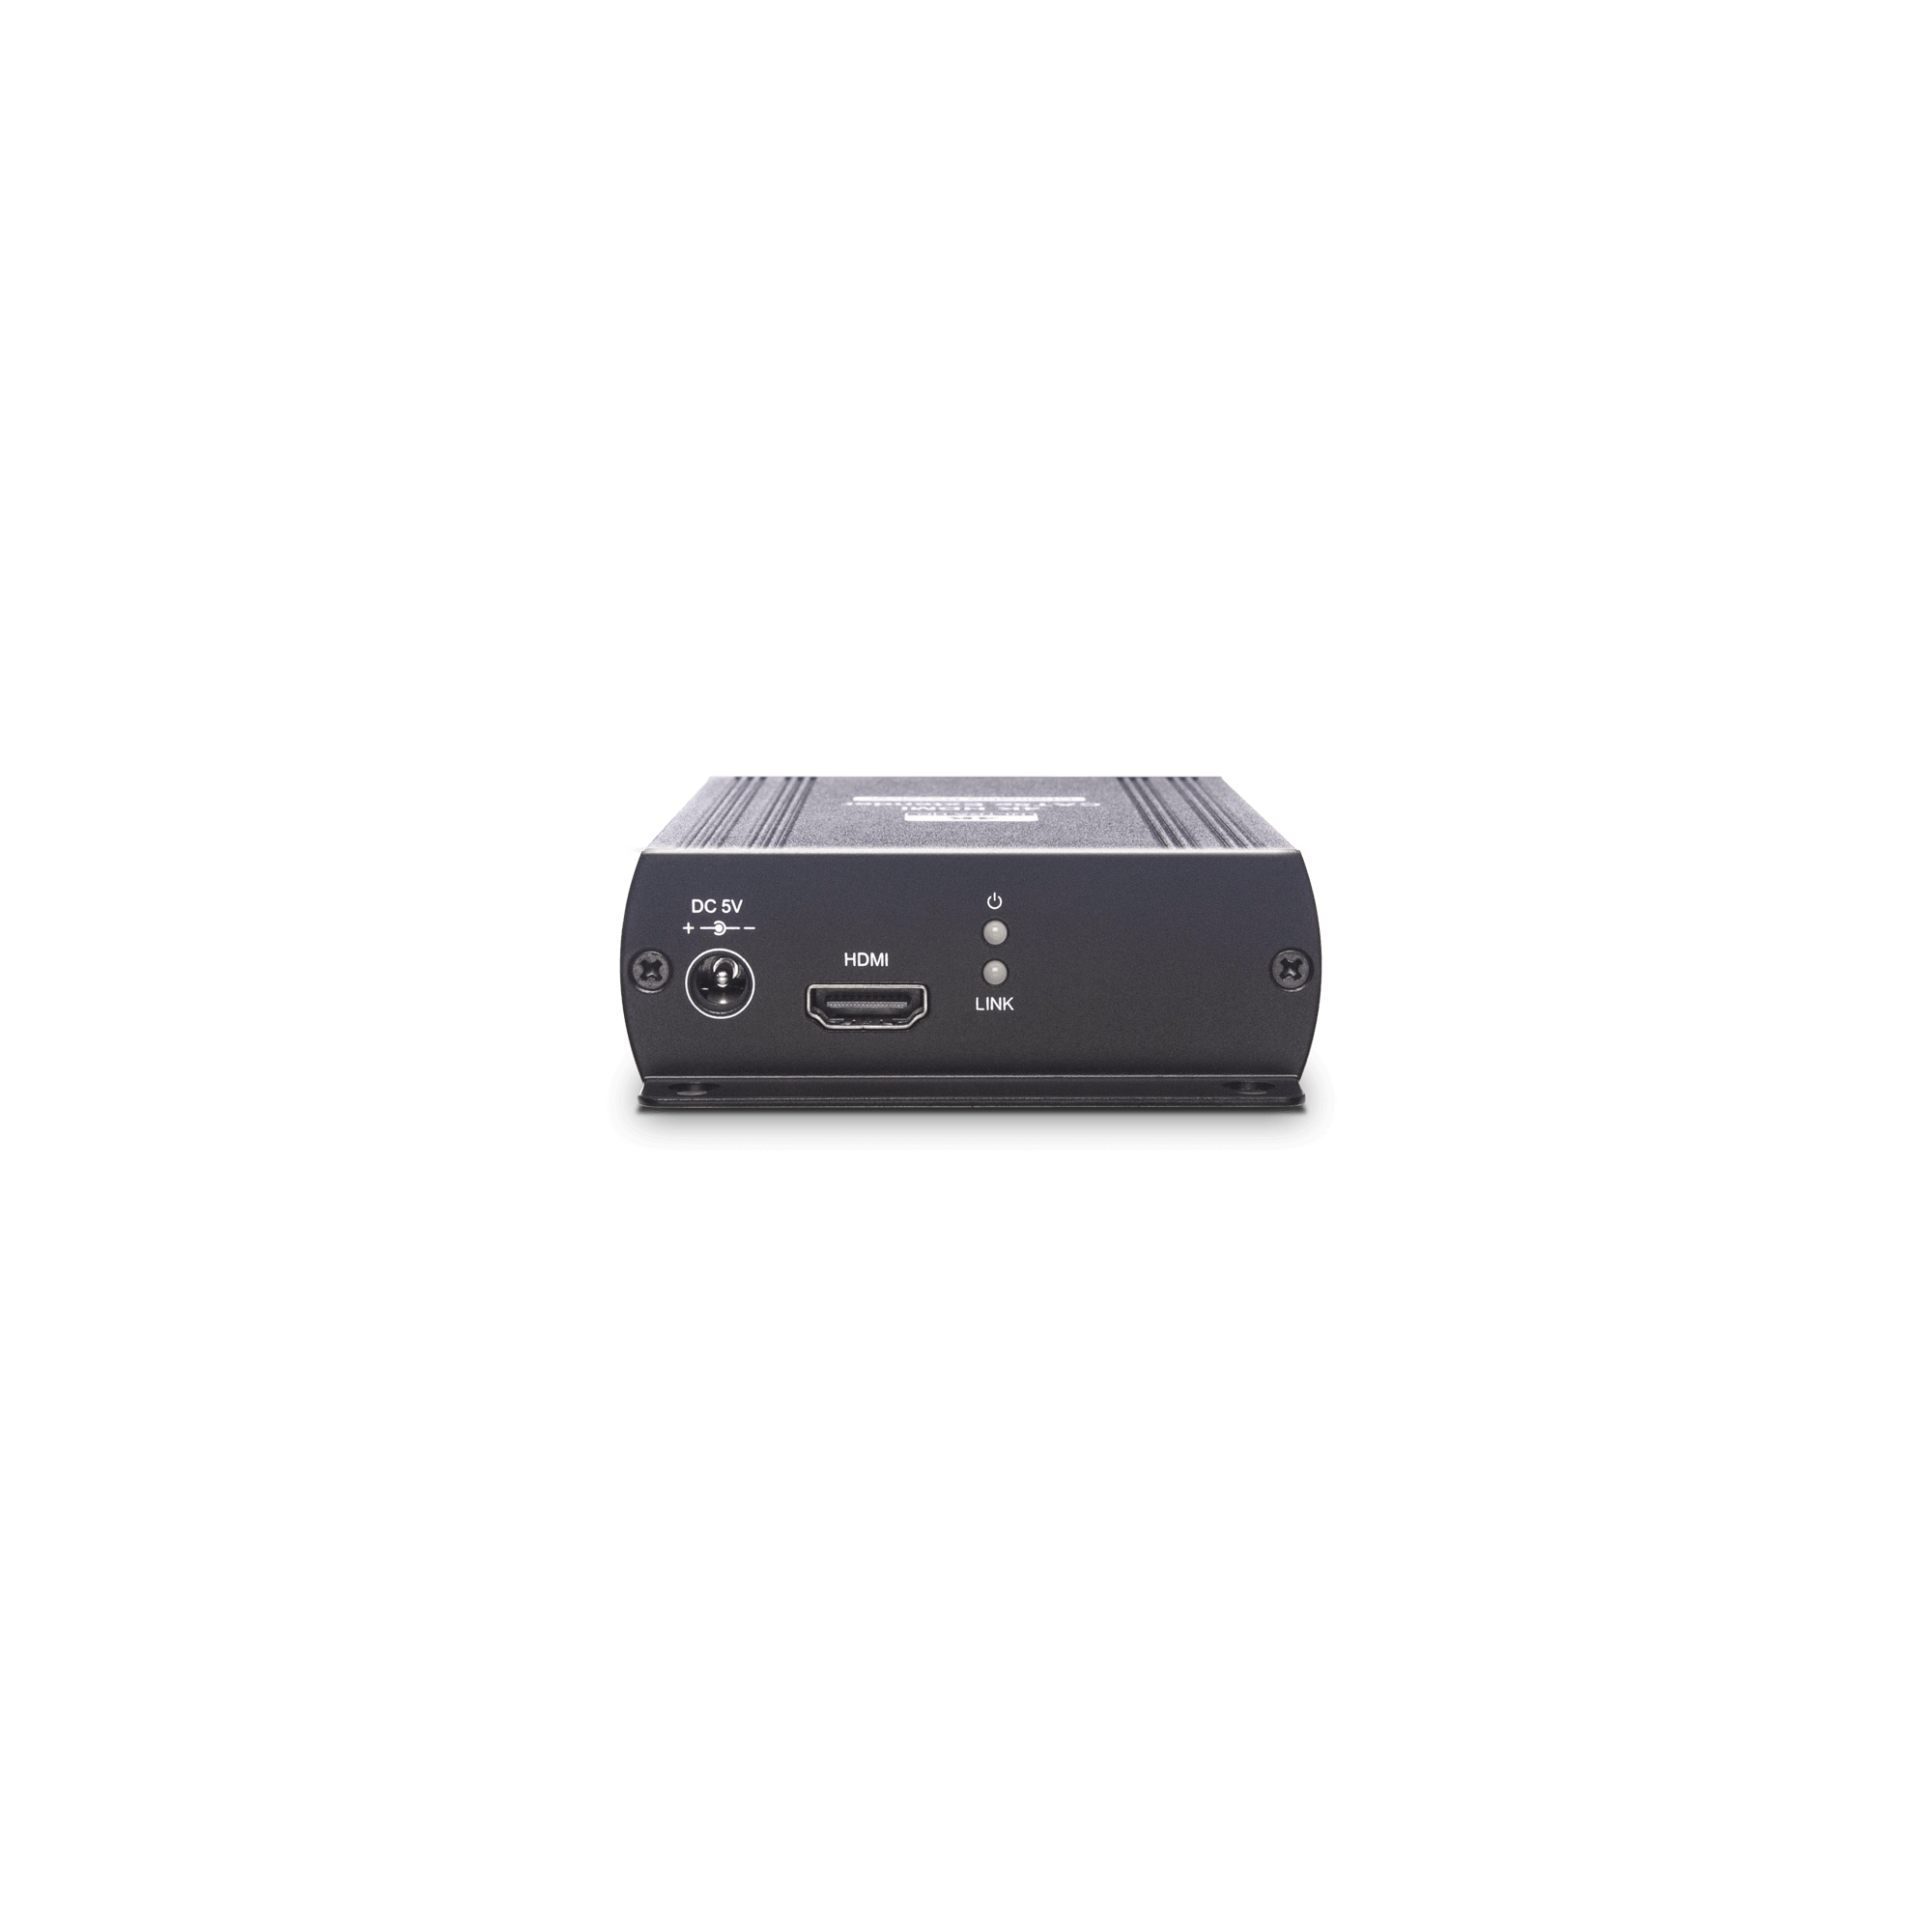 4K HDMI CAT5e/6 Extender with Chainable Recevier